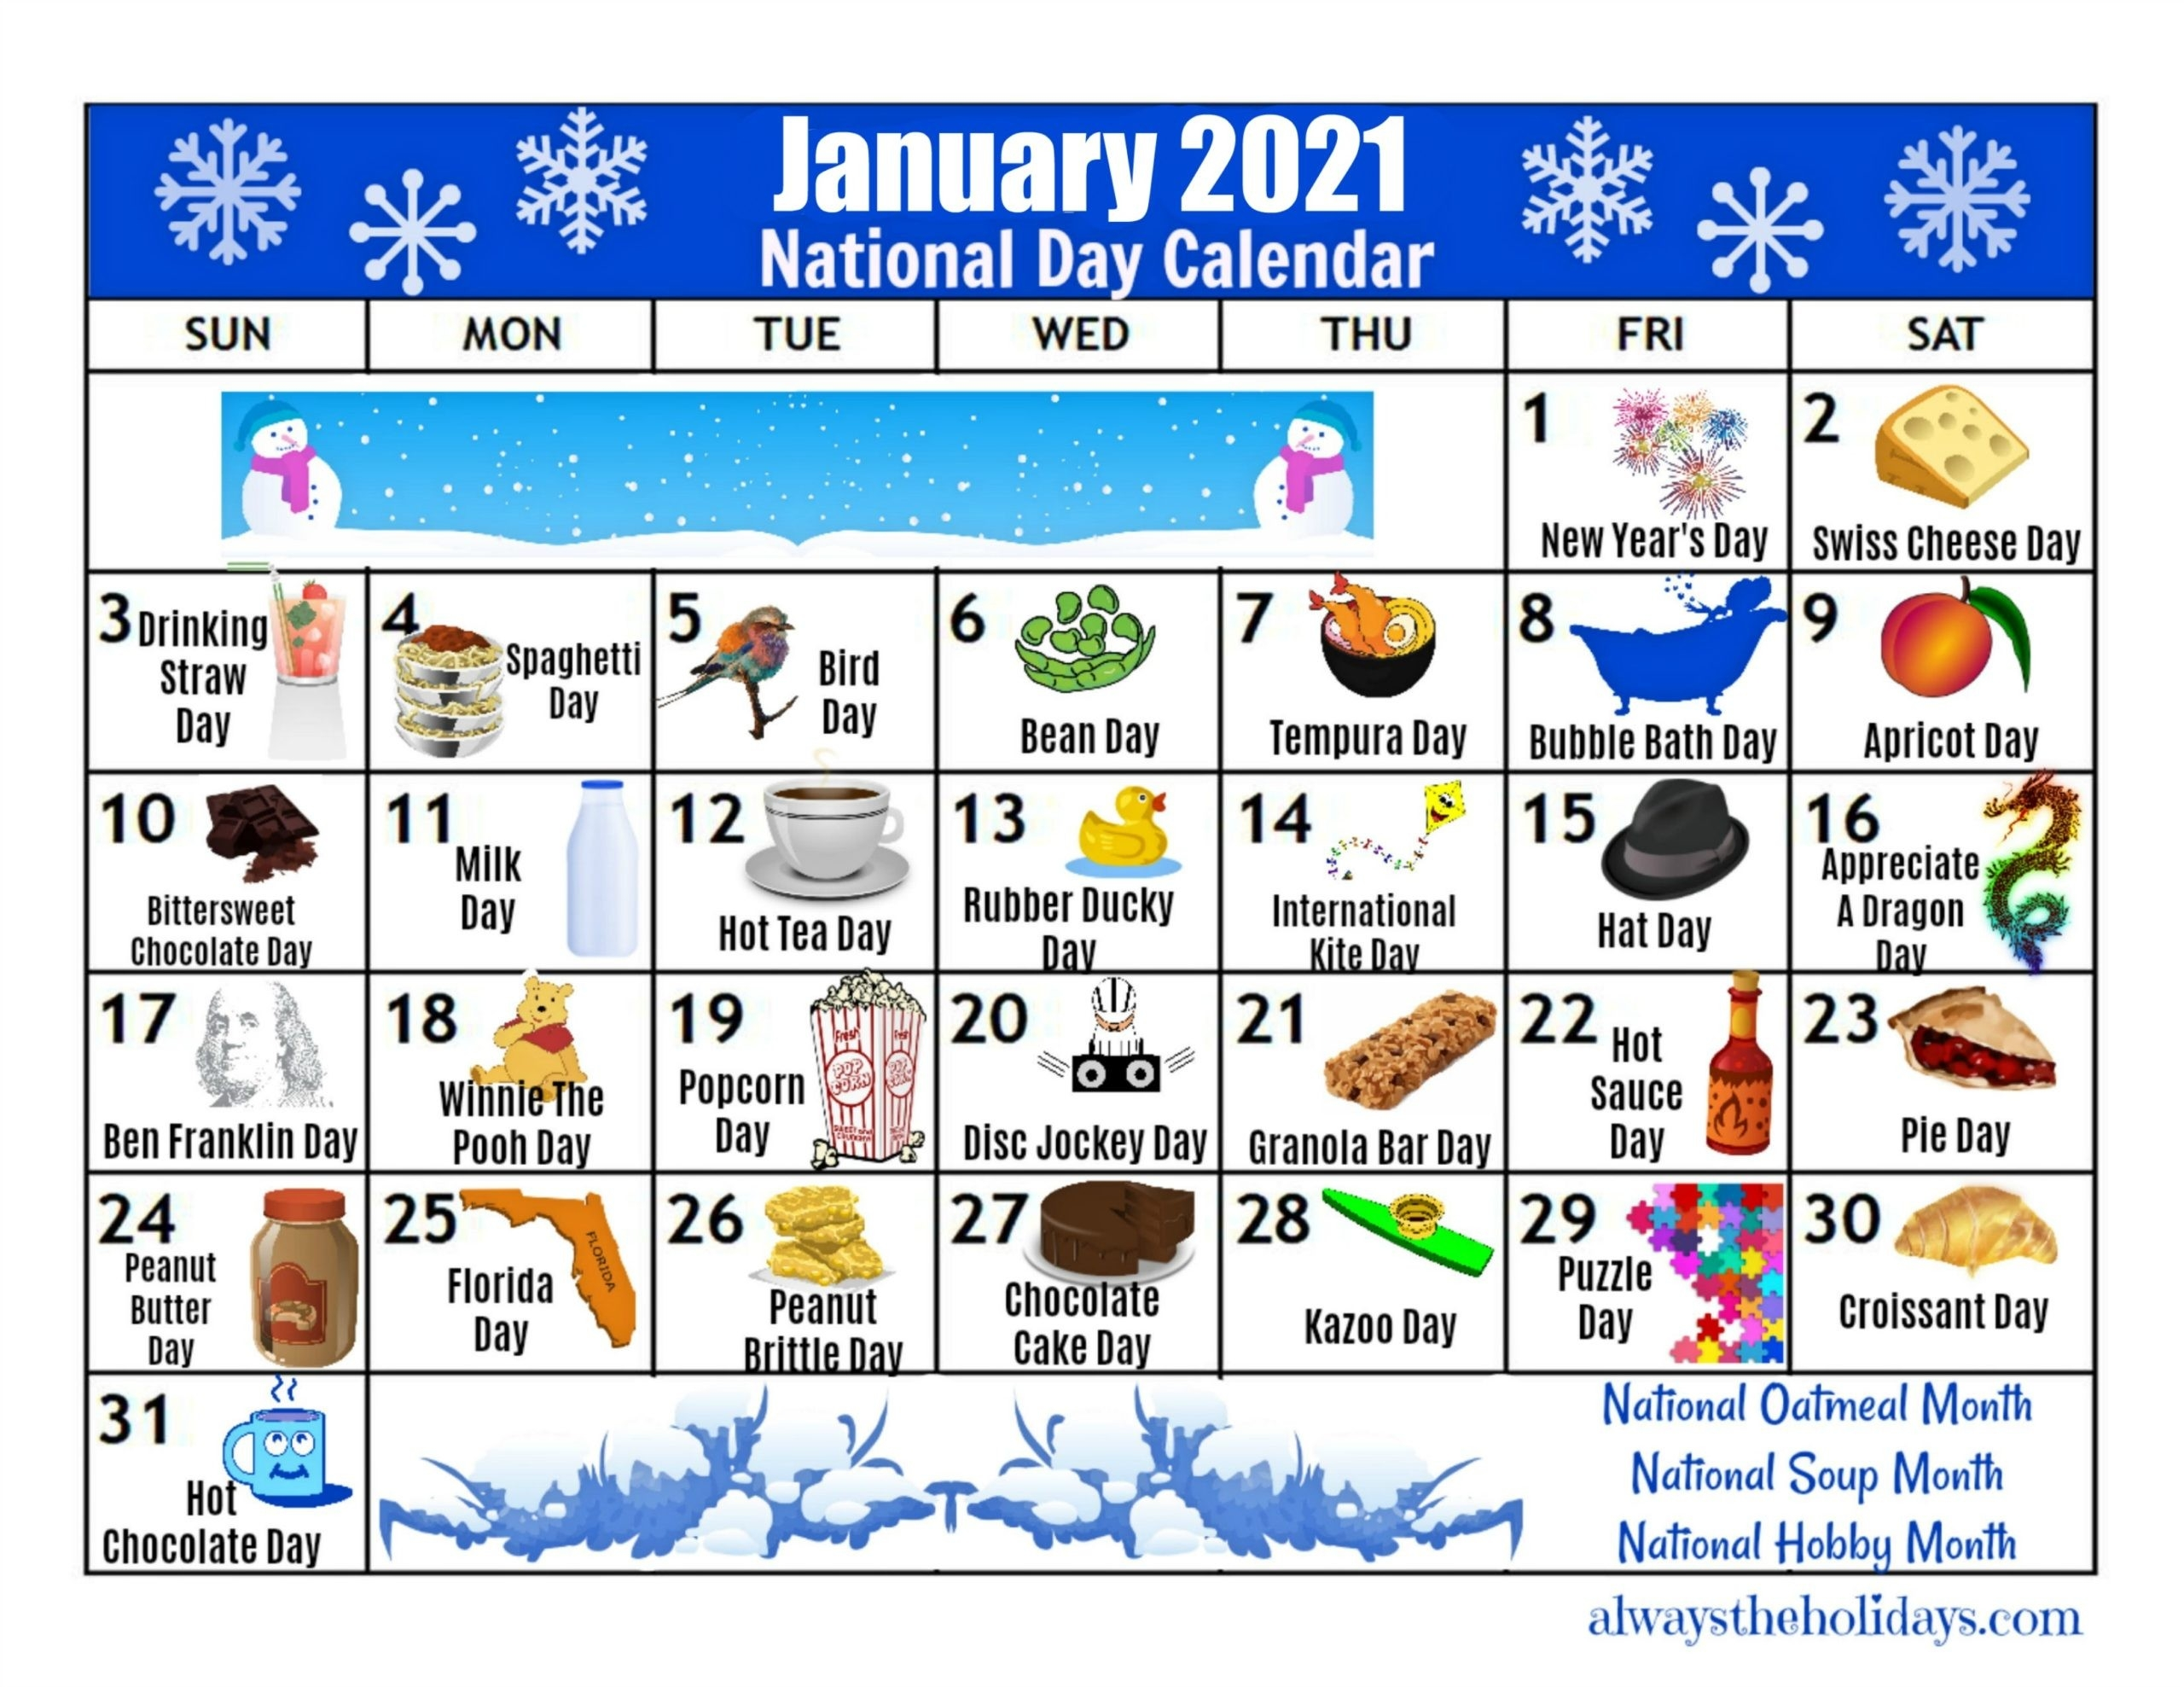 January Printable National Day Calendar 2021 - Free Planning-Fun National Day Calendar Of 2021 Printable